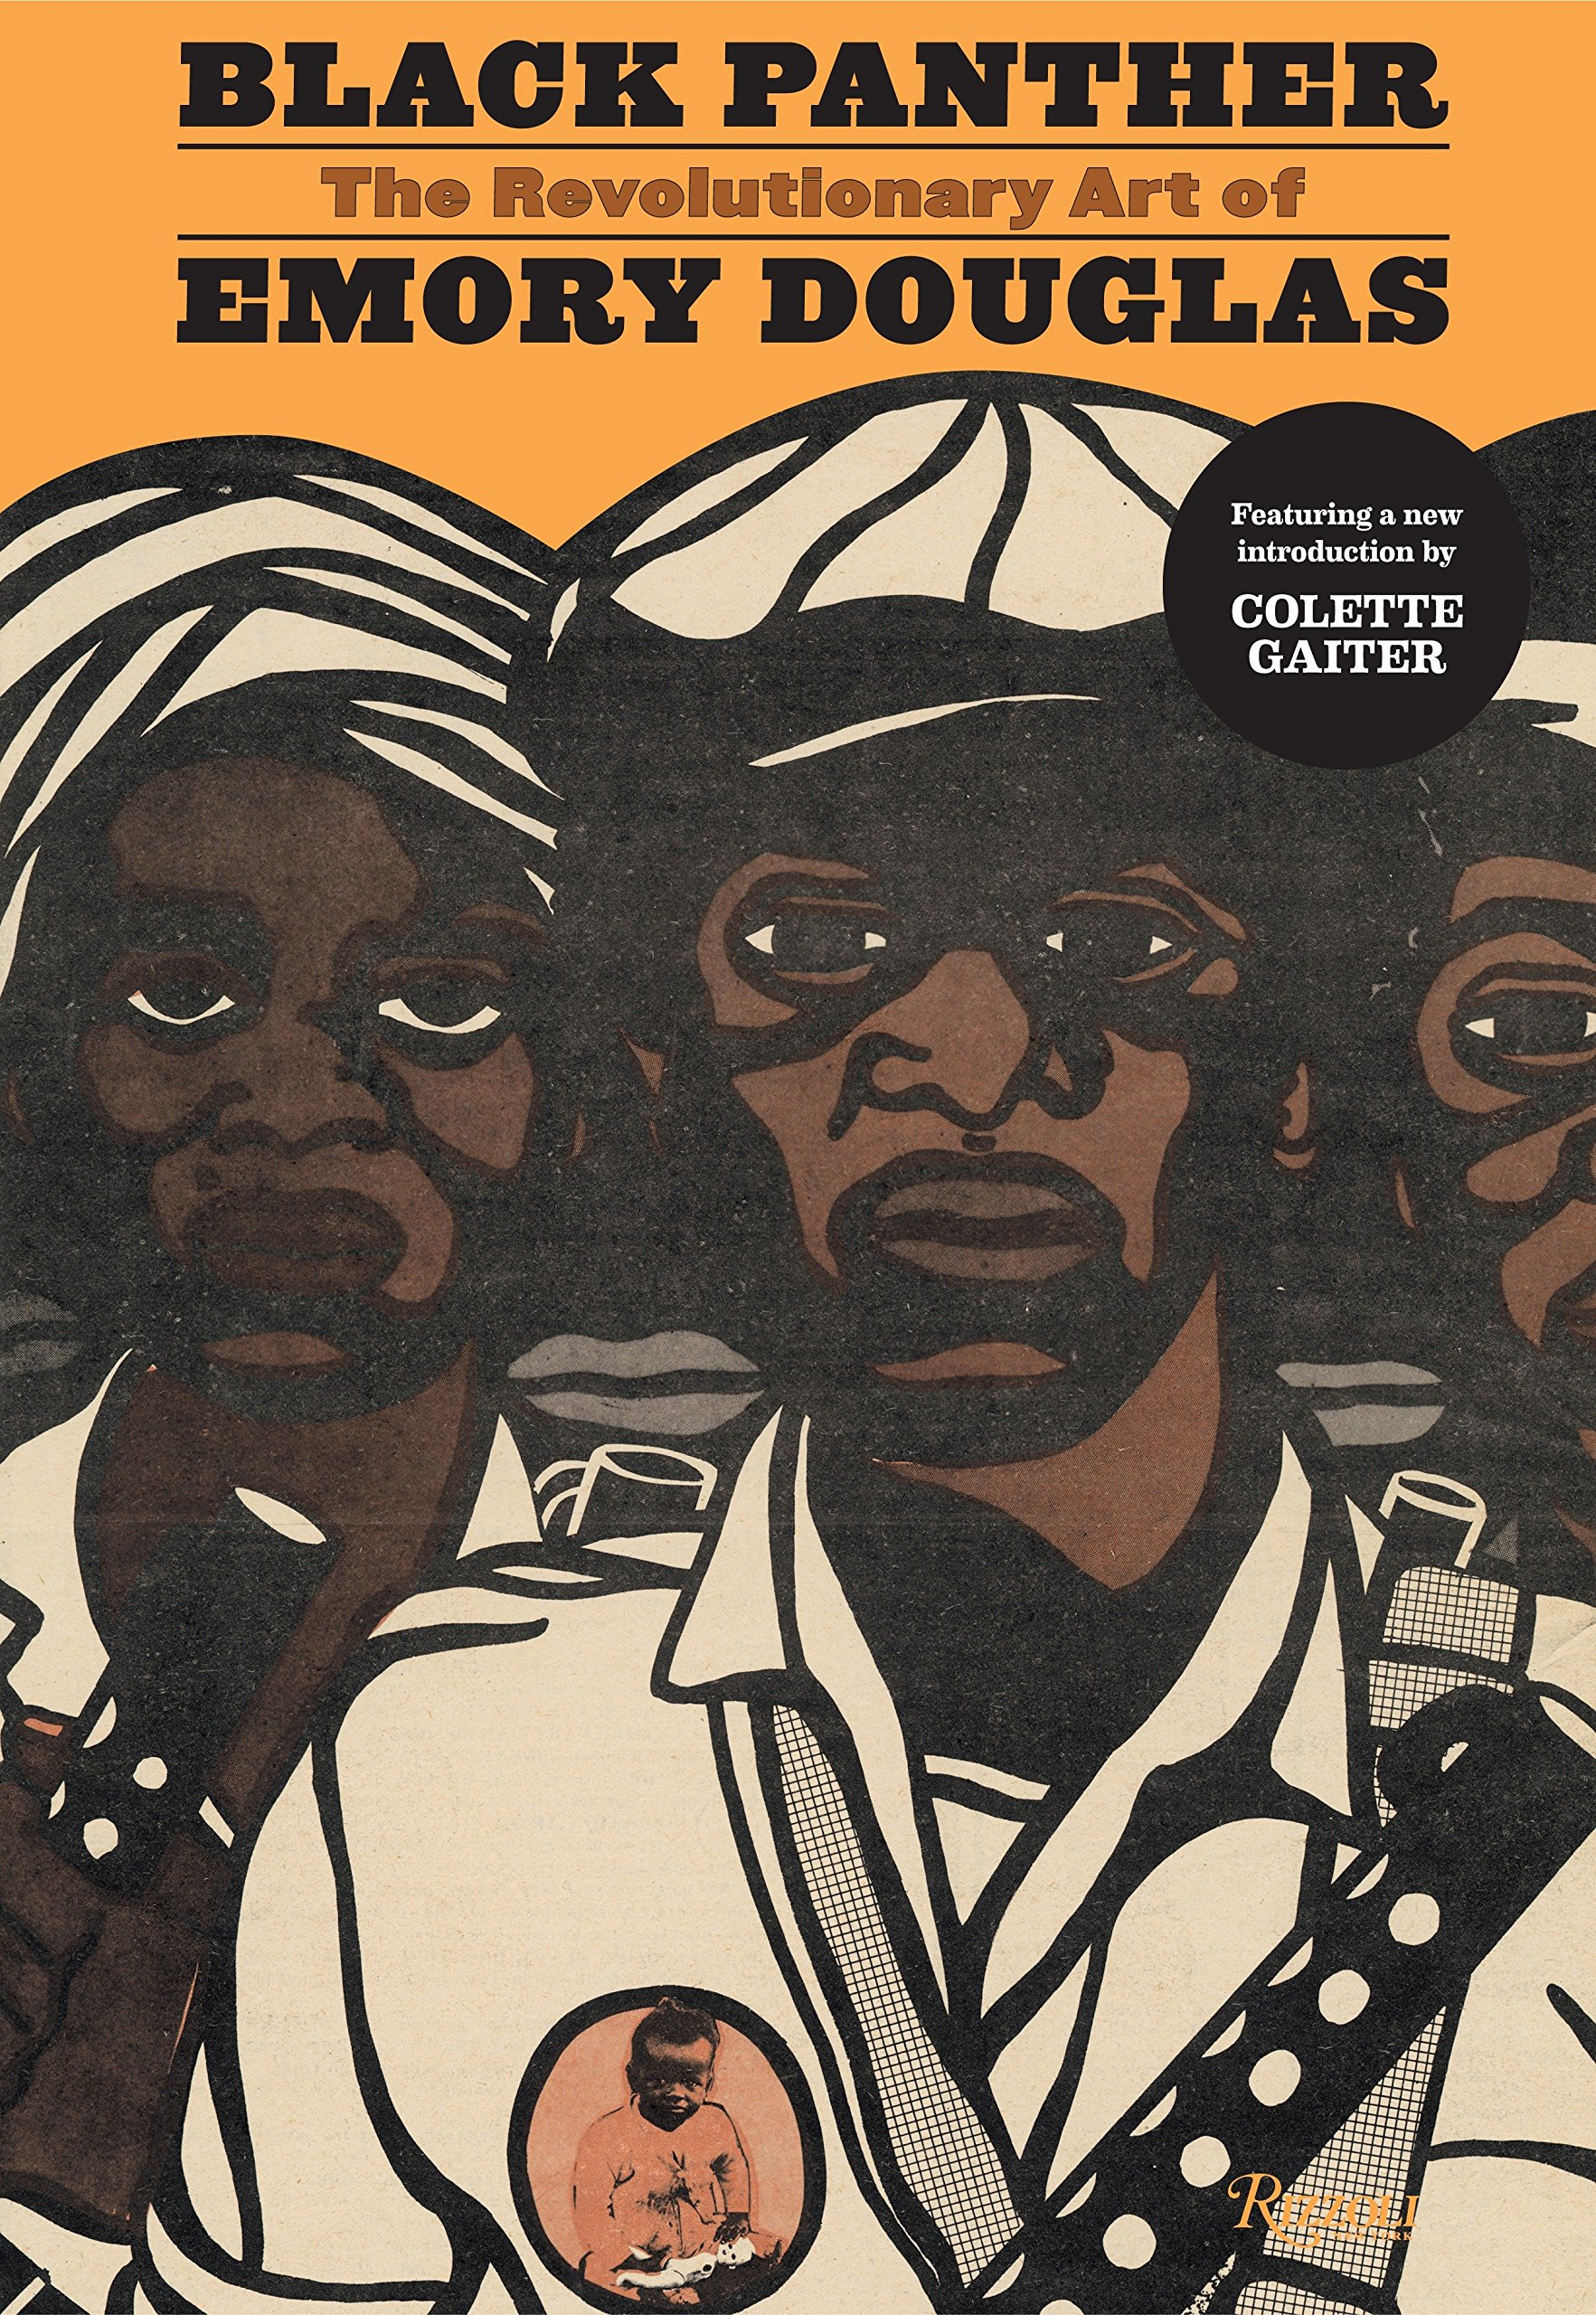 Artwork of Emory Douglas